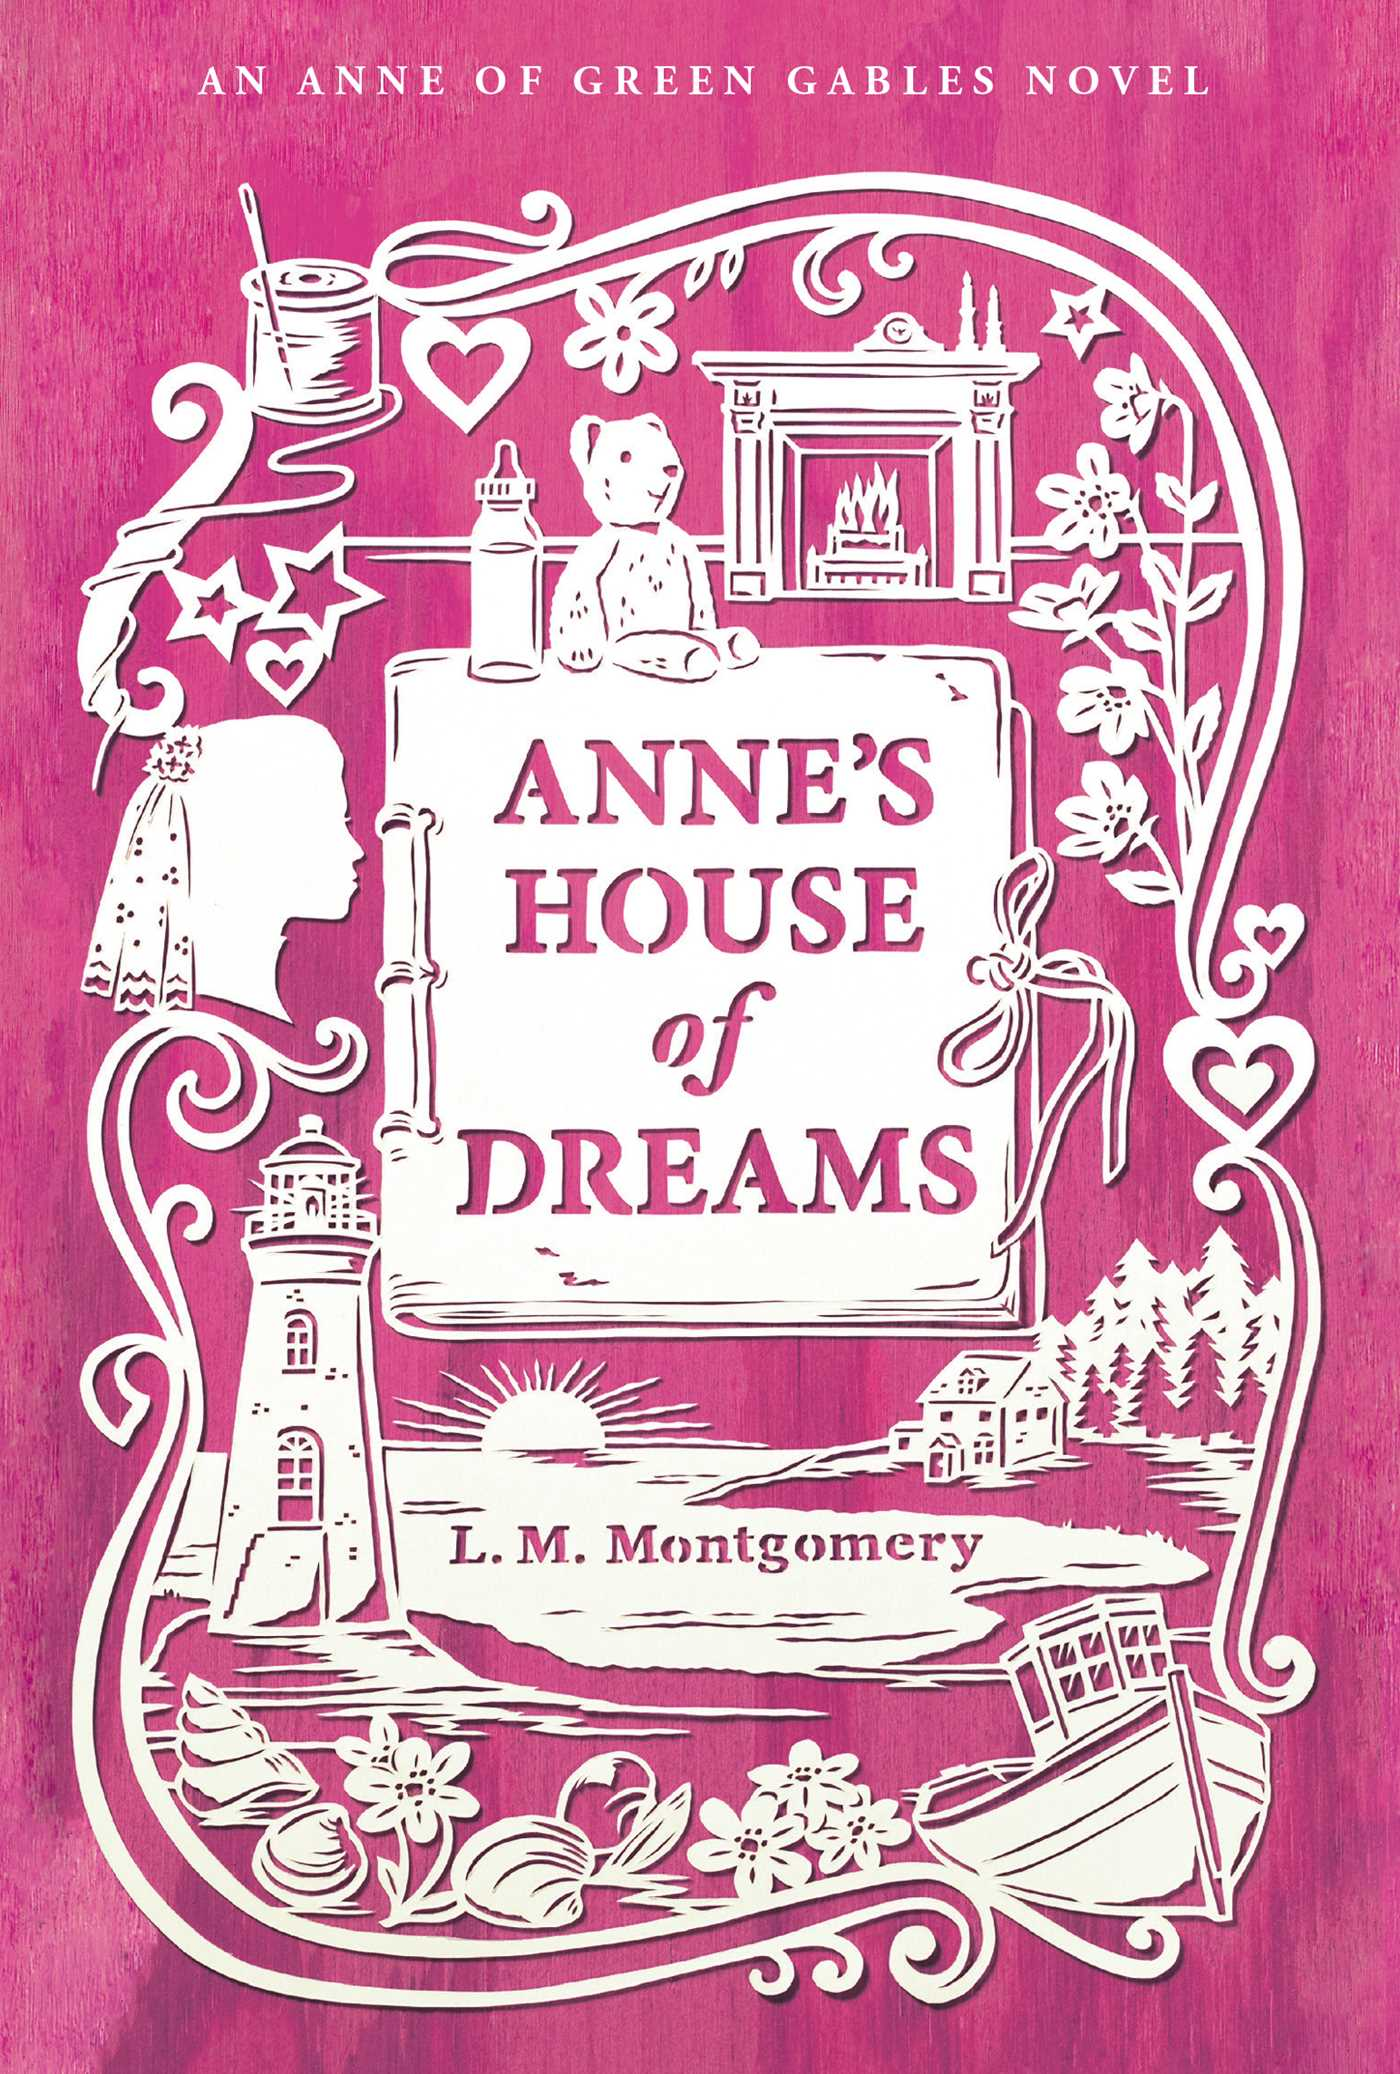 Annes-house-of-dreams-9781442490109_hr